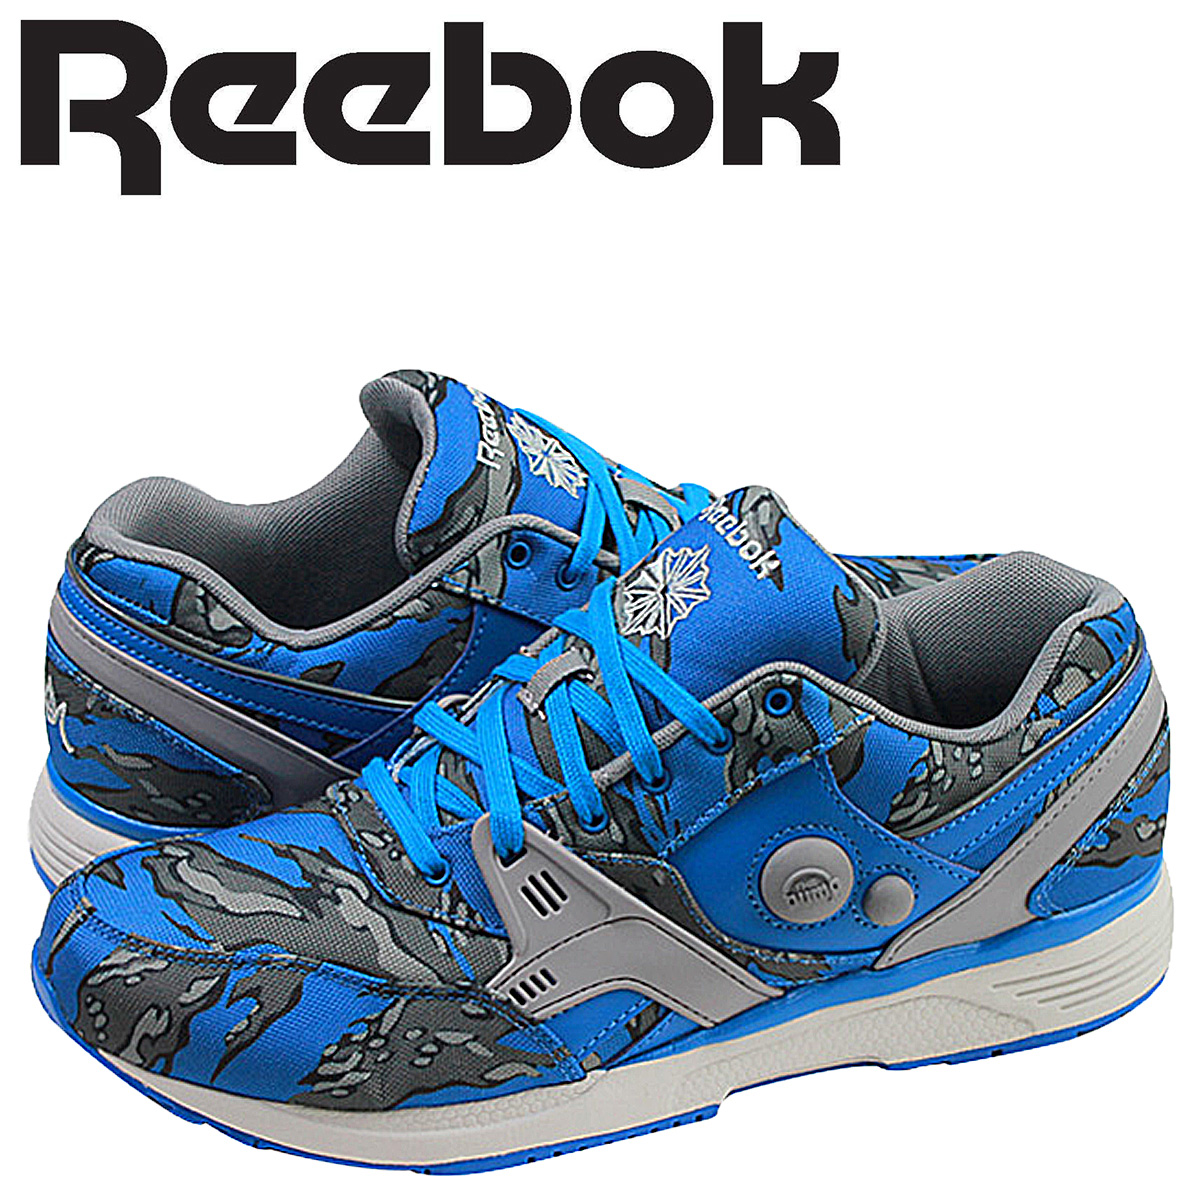 Reebok Reebok pump sneakers PUMP RUNNING DUAL STASH COLLECTION V61555 men shoes blue